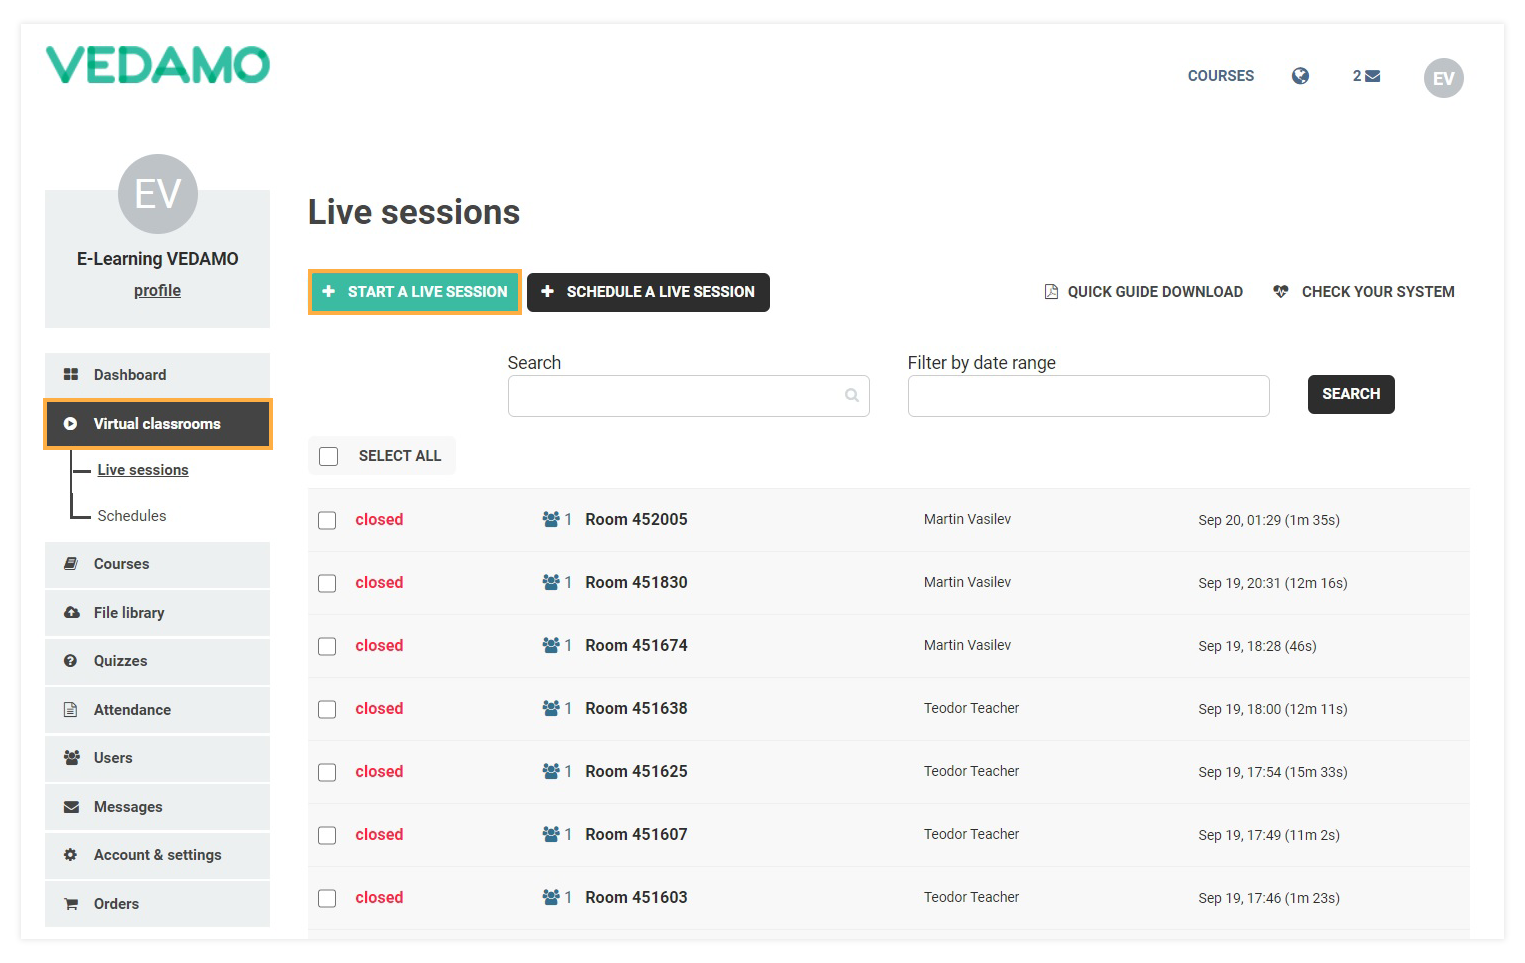 Start a Live Session allows you to create a new Virtual Classroom